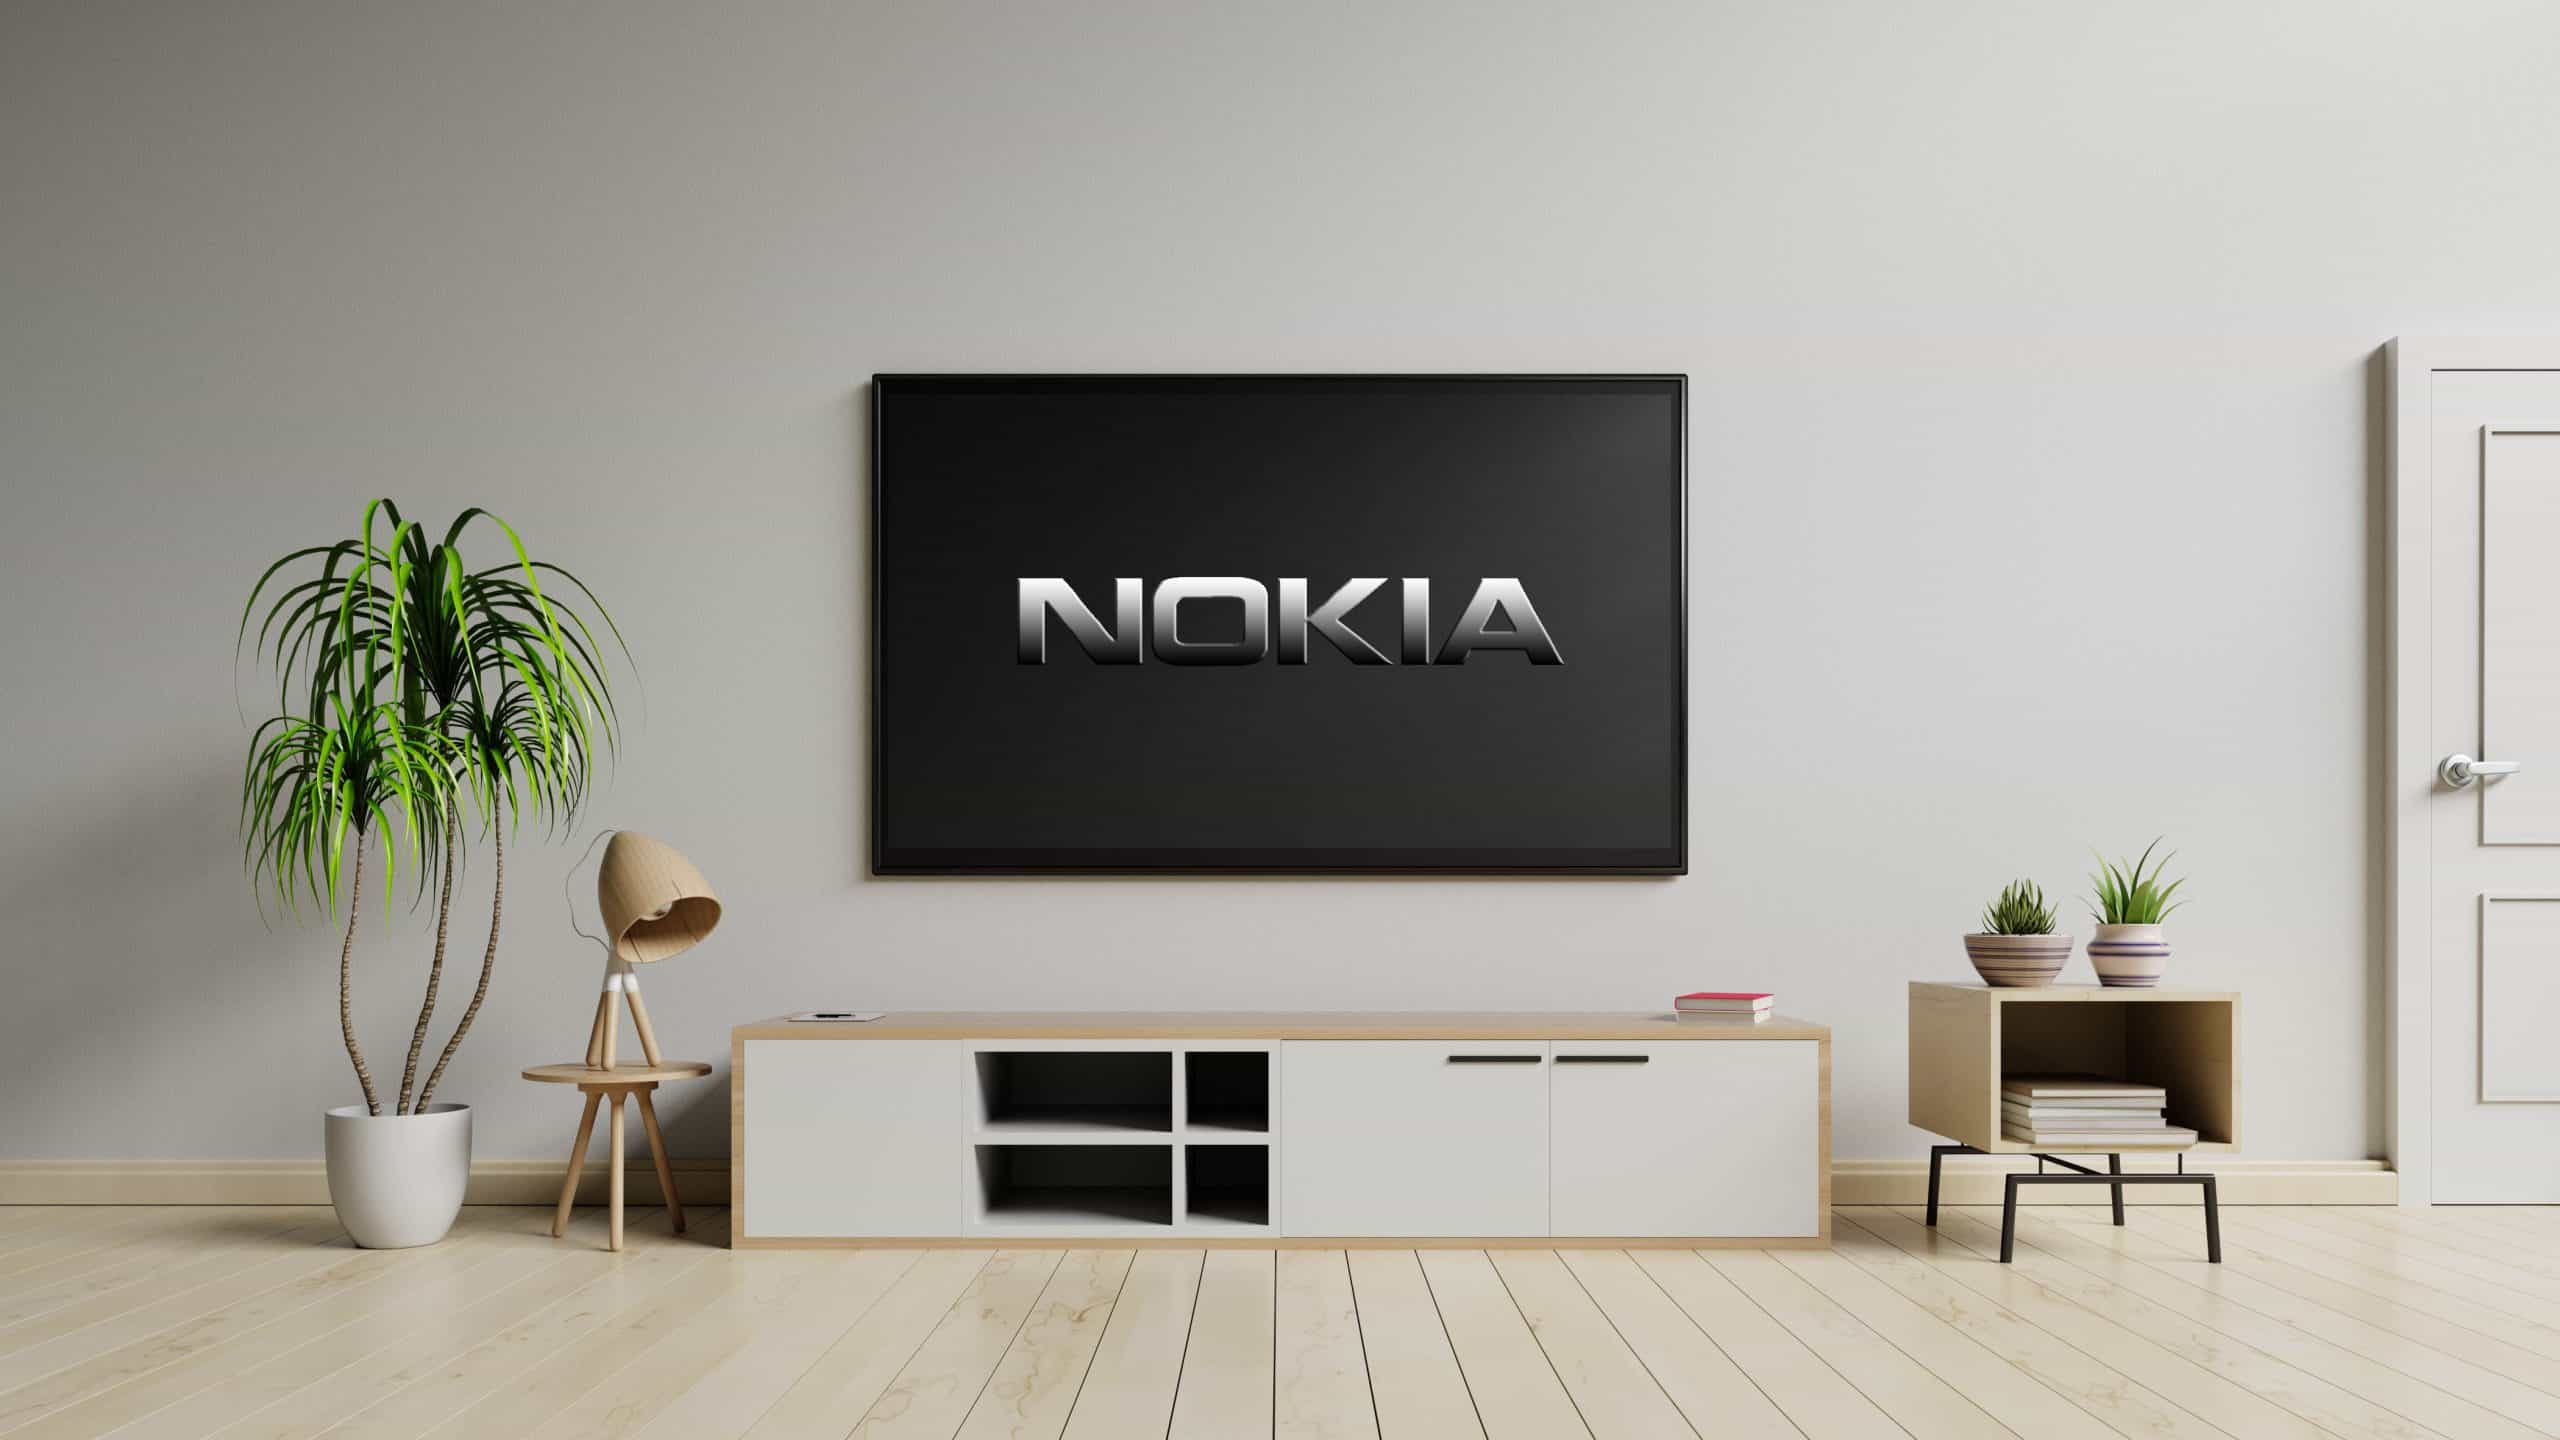 Nokia TV will come with 55 inches 4K UHD display